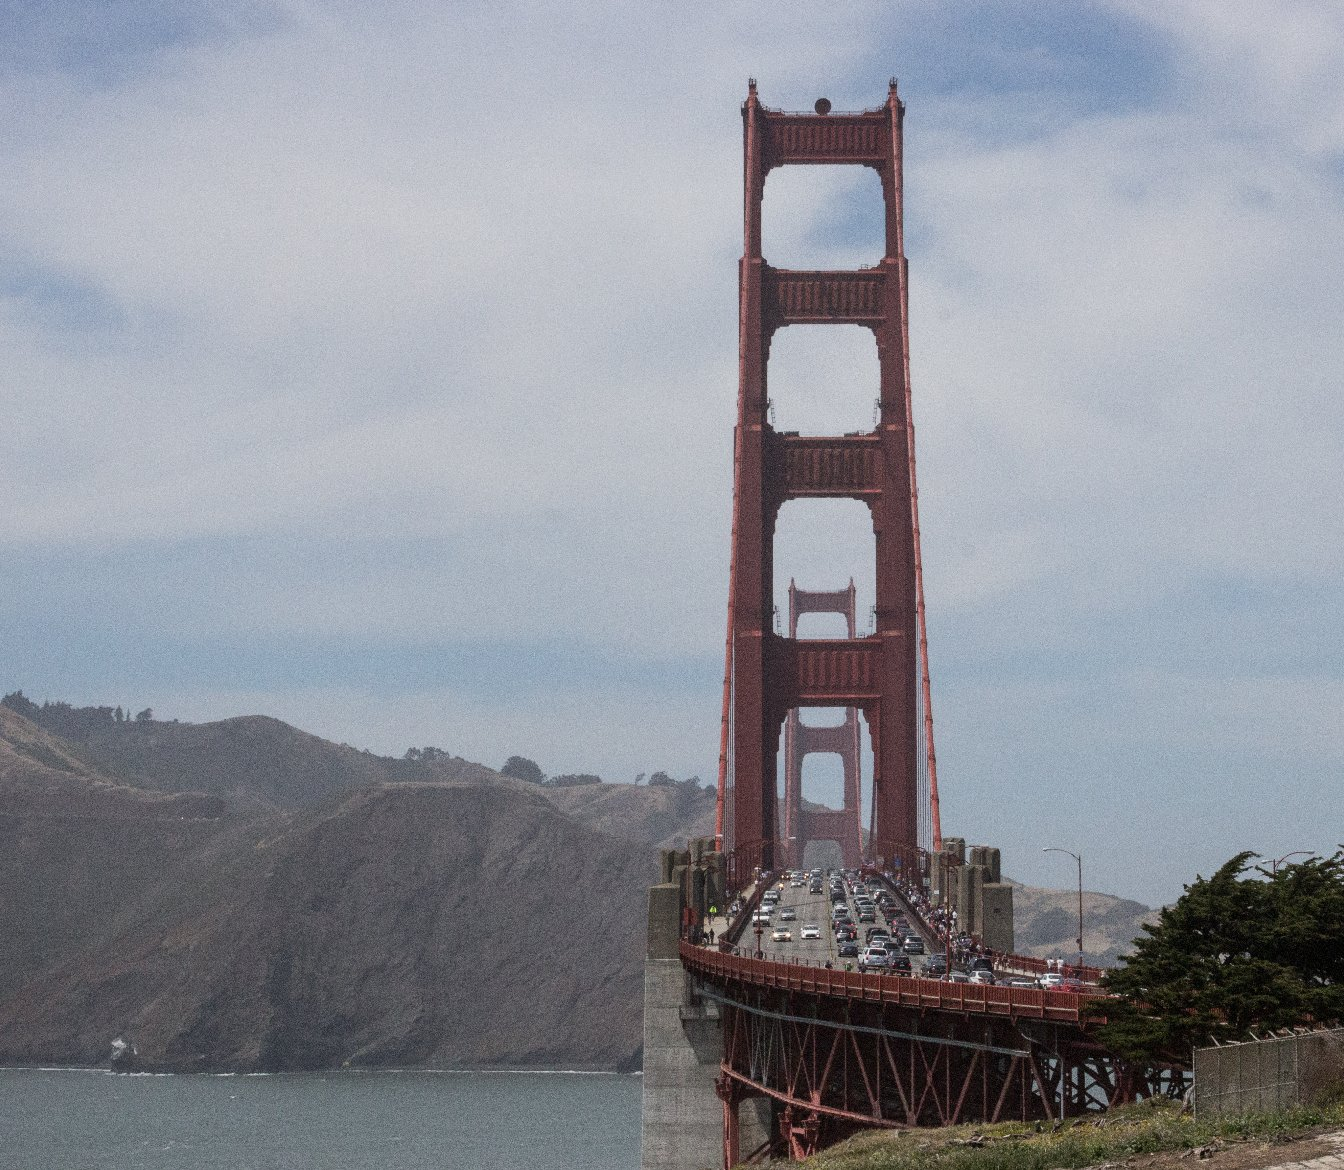 Golden Gate Bridge Tolls Going Up by a Quarter on Friday